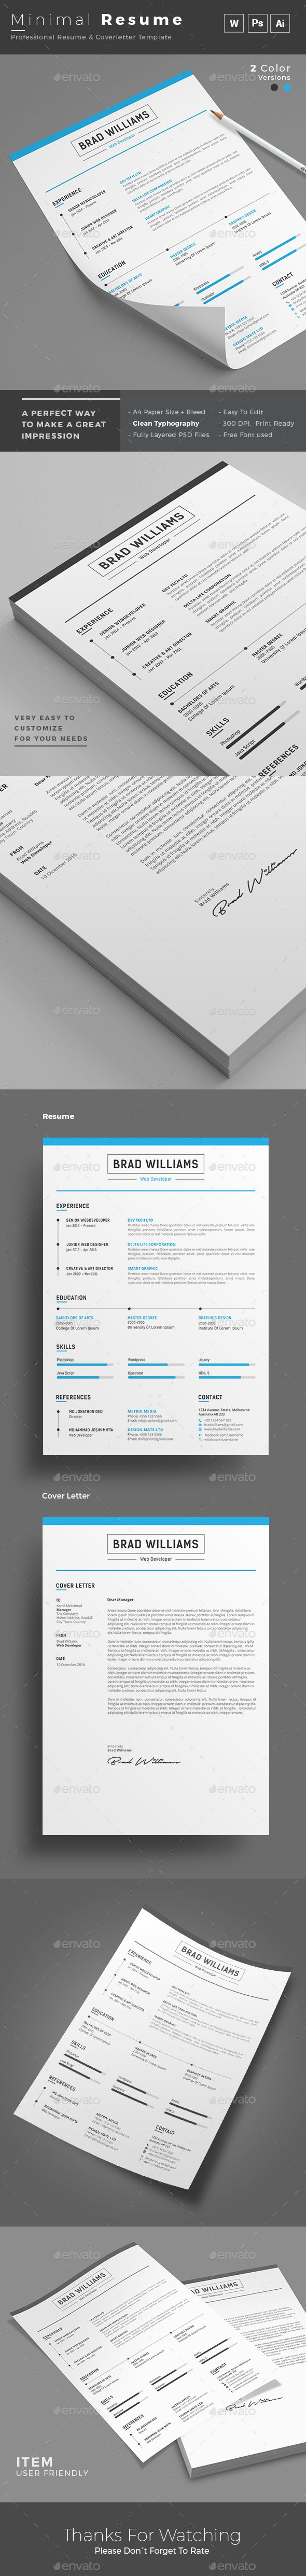 non chronological resumes